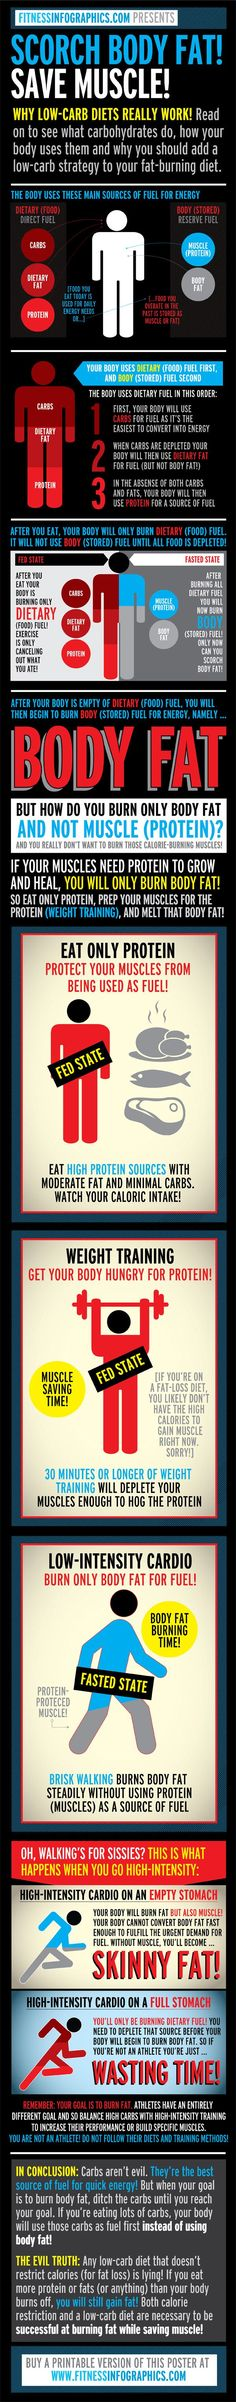 Scorch Body Fat, Save Muscle  Infographic: How bodies burn fat, what/when to train/eat #sixpackabs